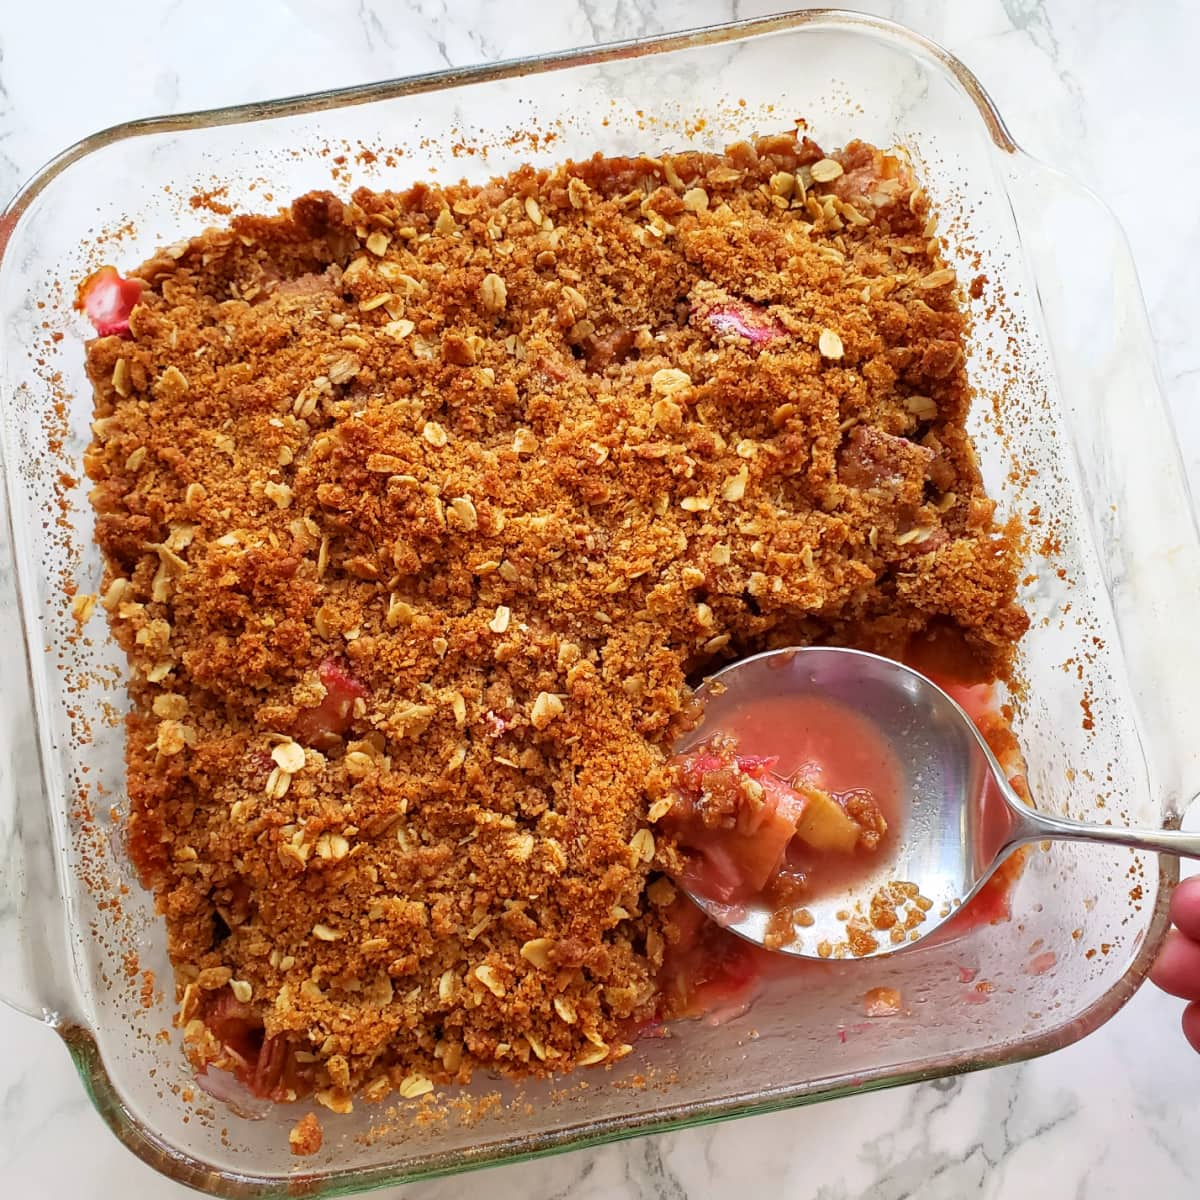 Rhubarb Crumble in a square glass baking dish with a large spoon and a corner of the crumble removed